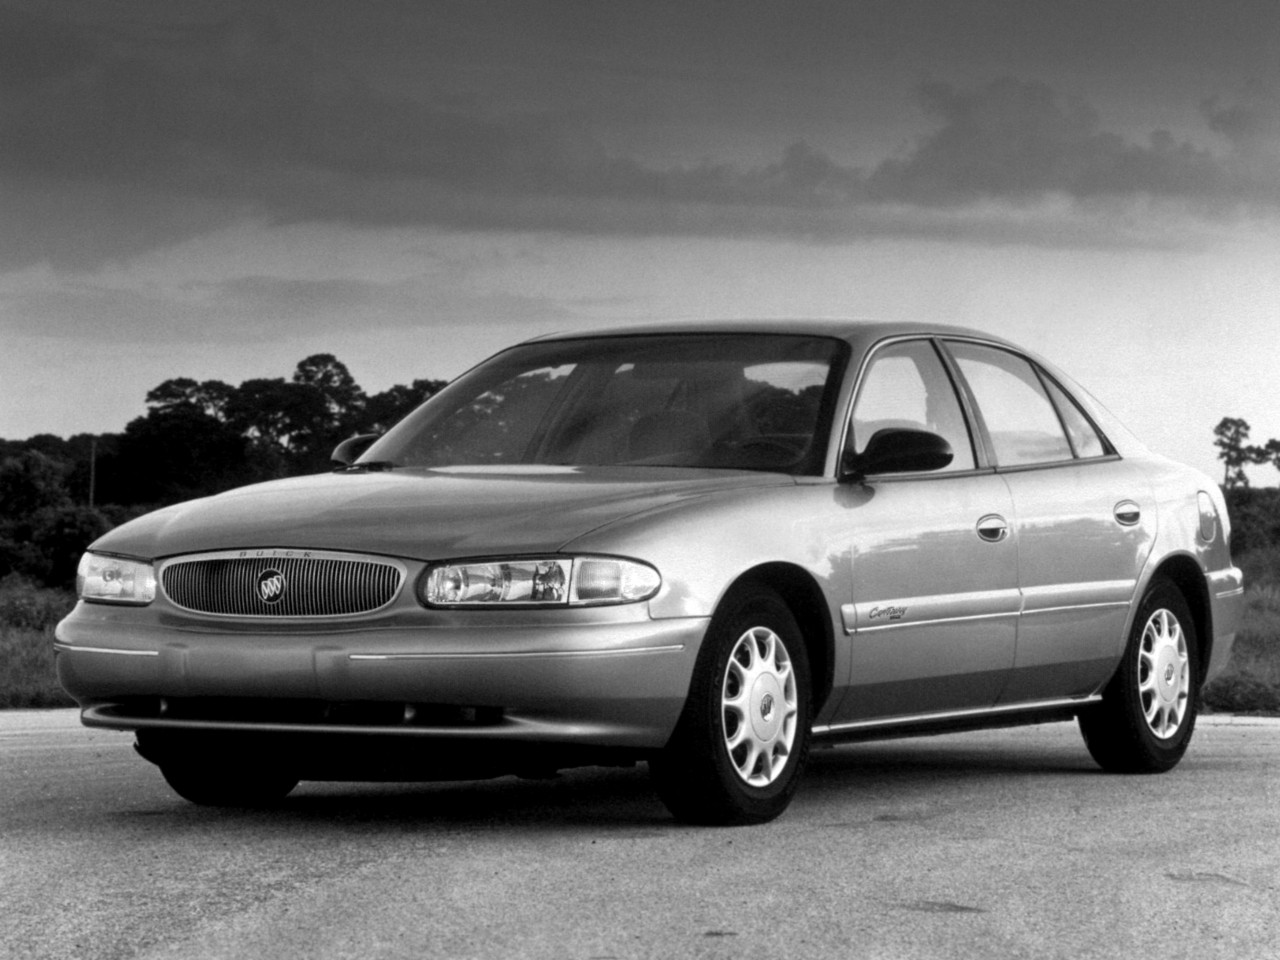 Buick Century on 1999 Toyota Camry V6 Engine